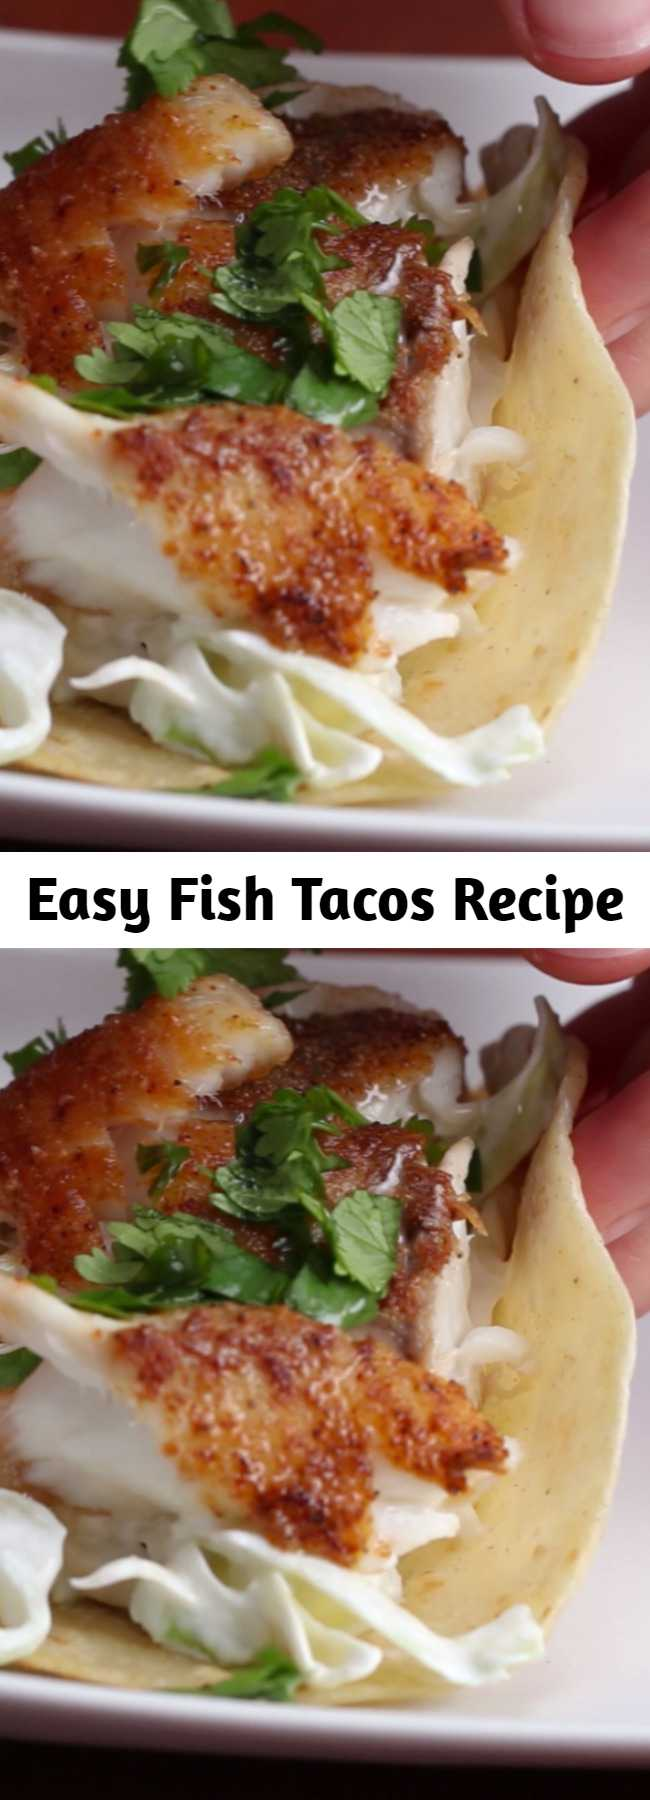 Easy Fish Tacos Recipe - Fish tacos are the best tacos.